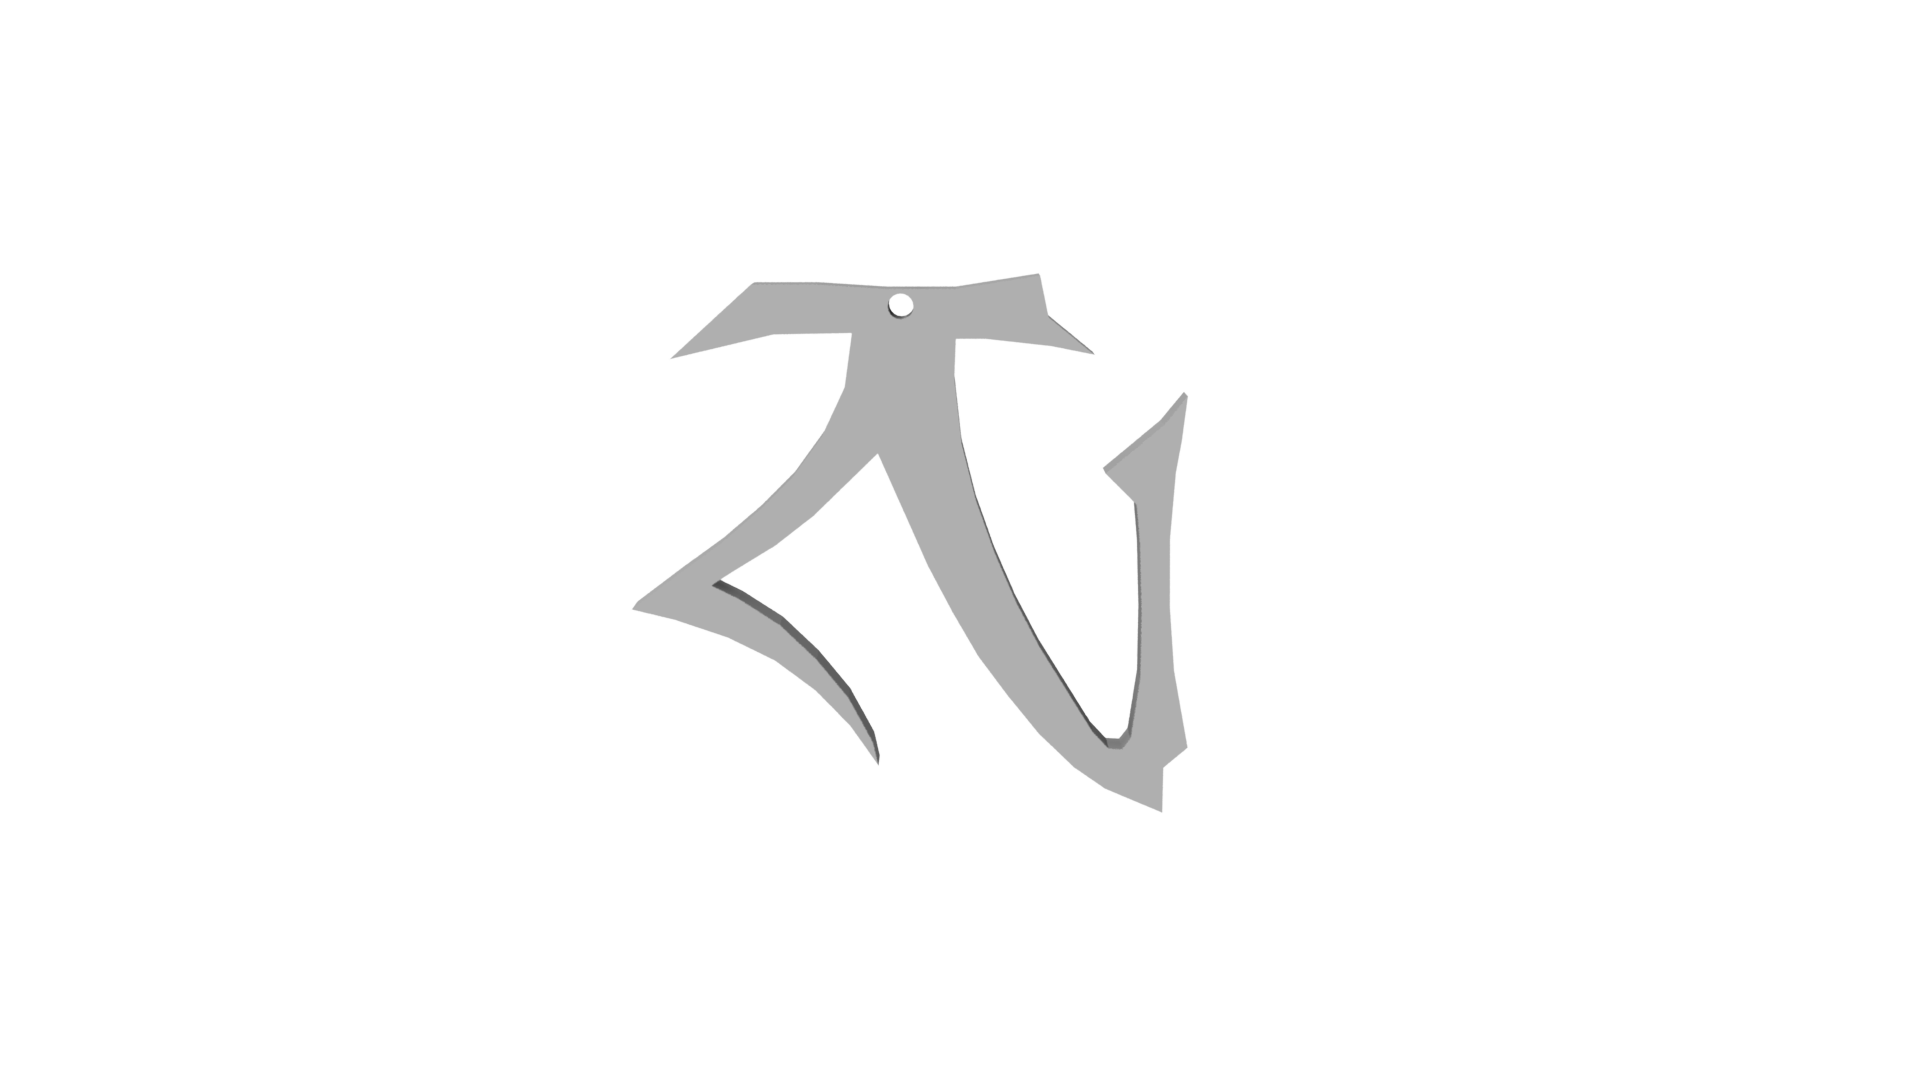 Legacy Of Kain Soul Reaver Dumah Clan Symbol By Vlinedesigns